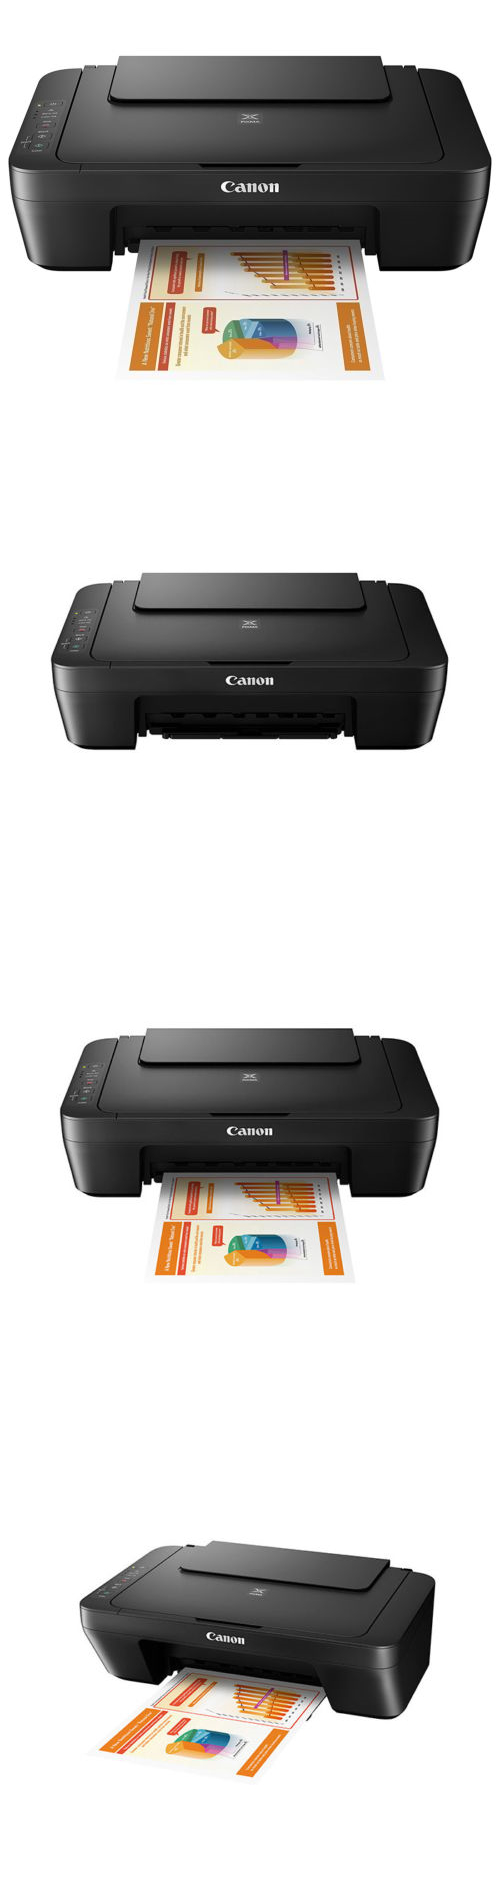 Computers Canon Pixma Mg2525 Inkjet All In One Color Photo Printer